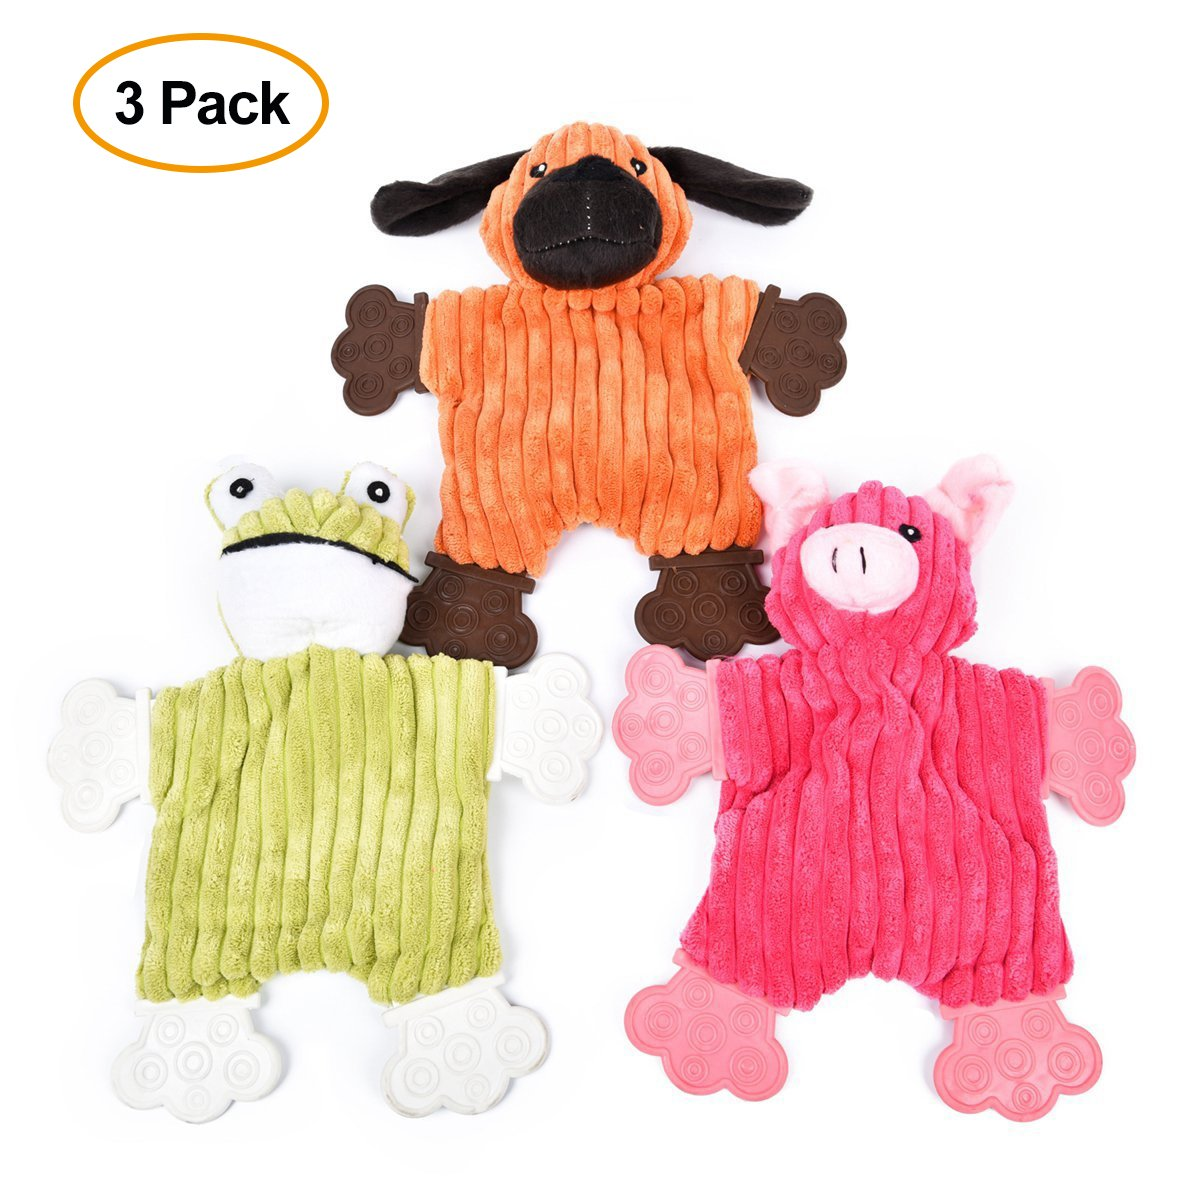 Speedy Pet Dog Chew Toys, Plush Pet Training Squeaky Chew Toy Funny Cartoon Animal Pig/Dog/Frog Toy 3pack